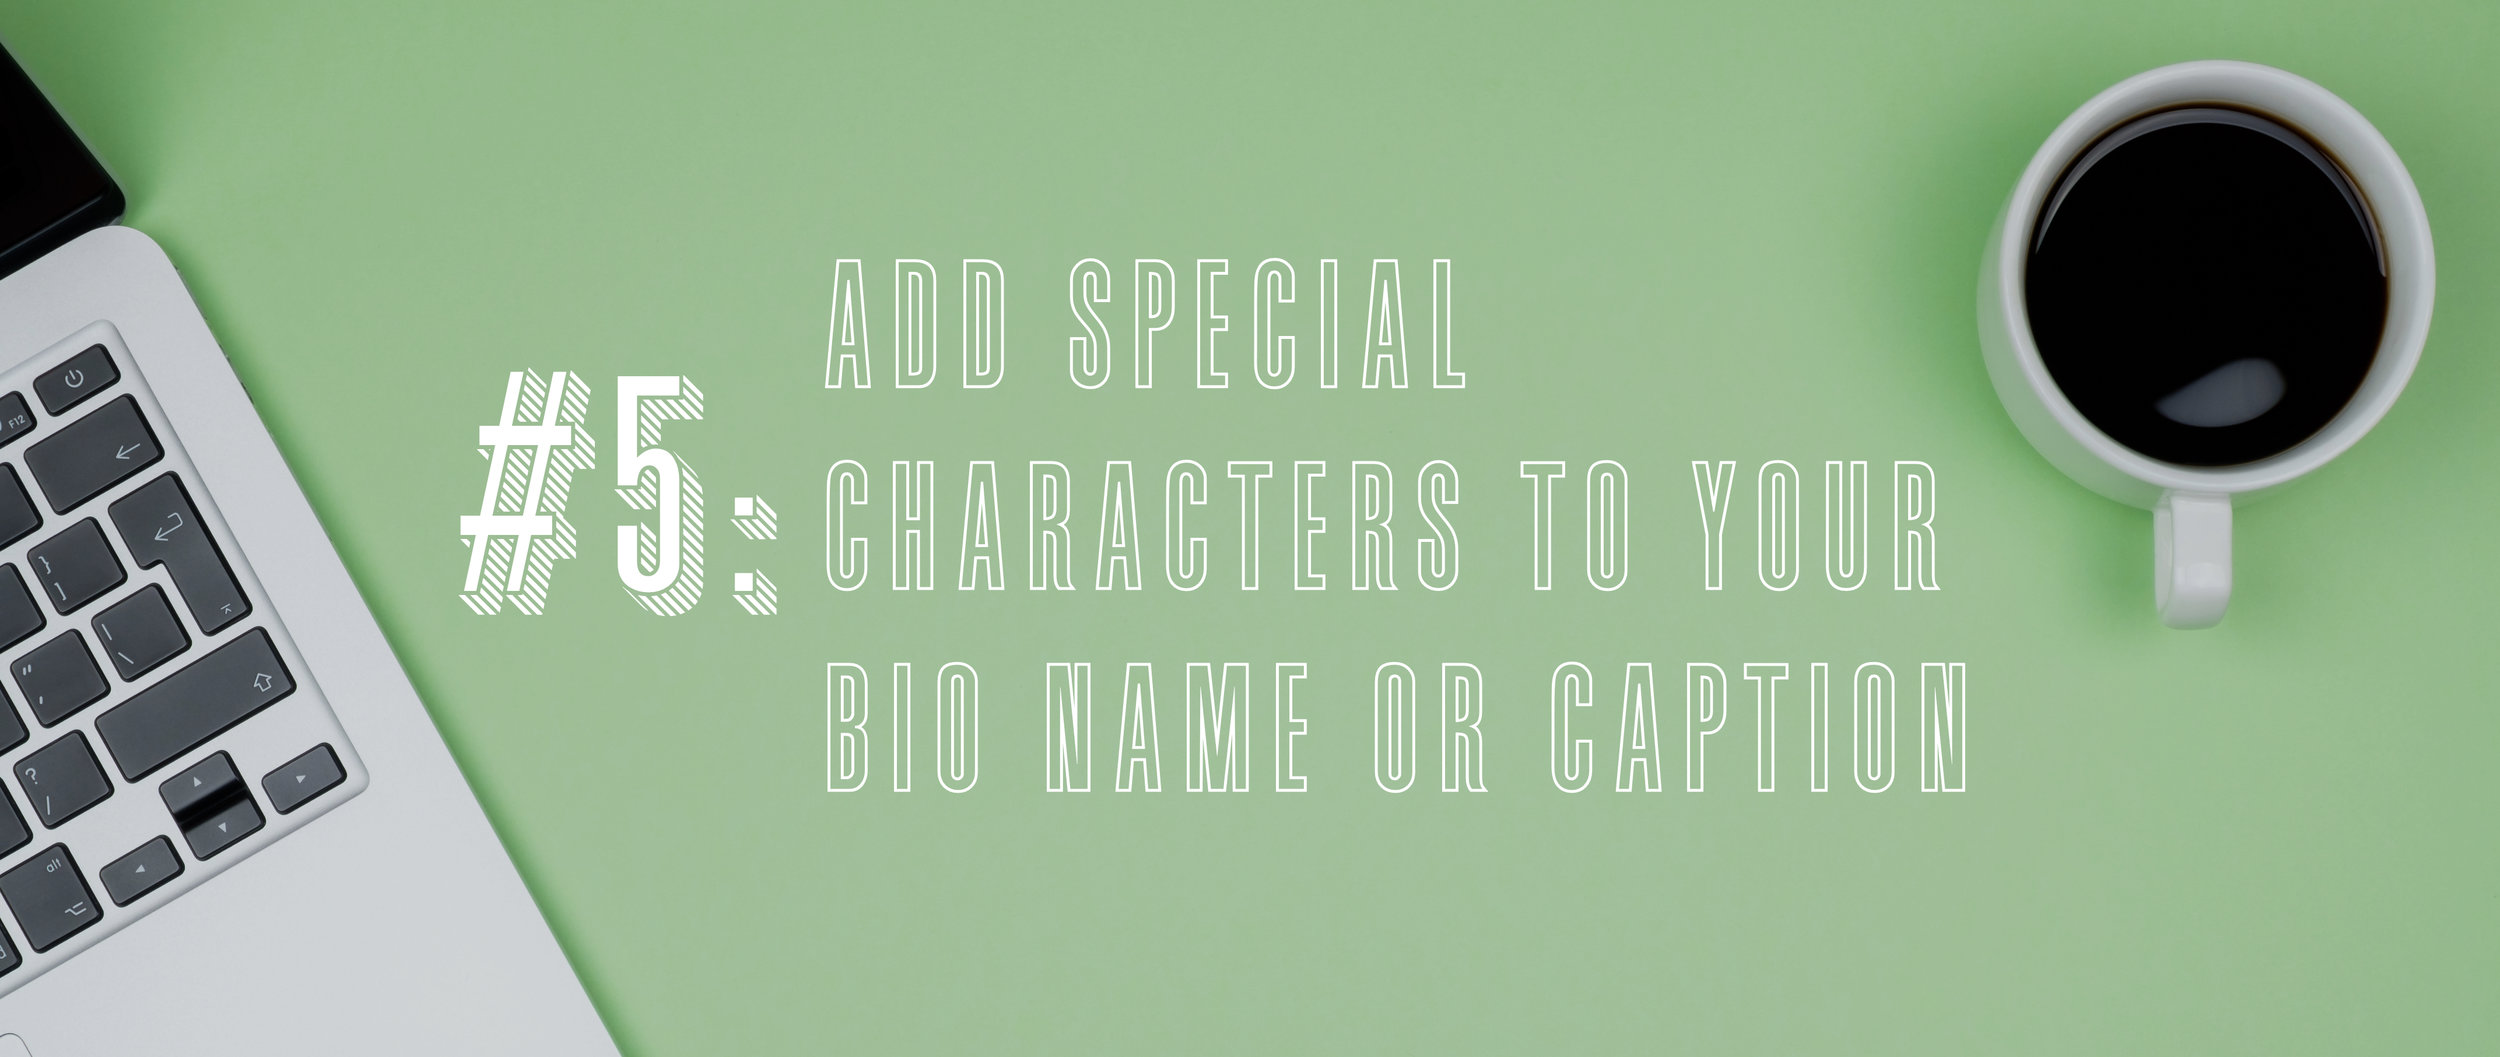 5 Add Special Characters to Your Bio Name or Caption.jpg